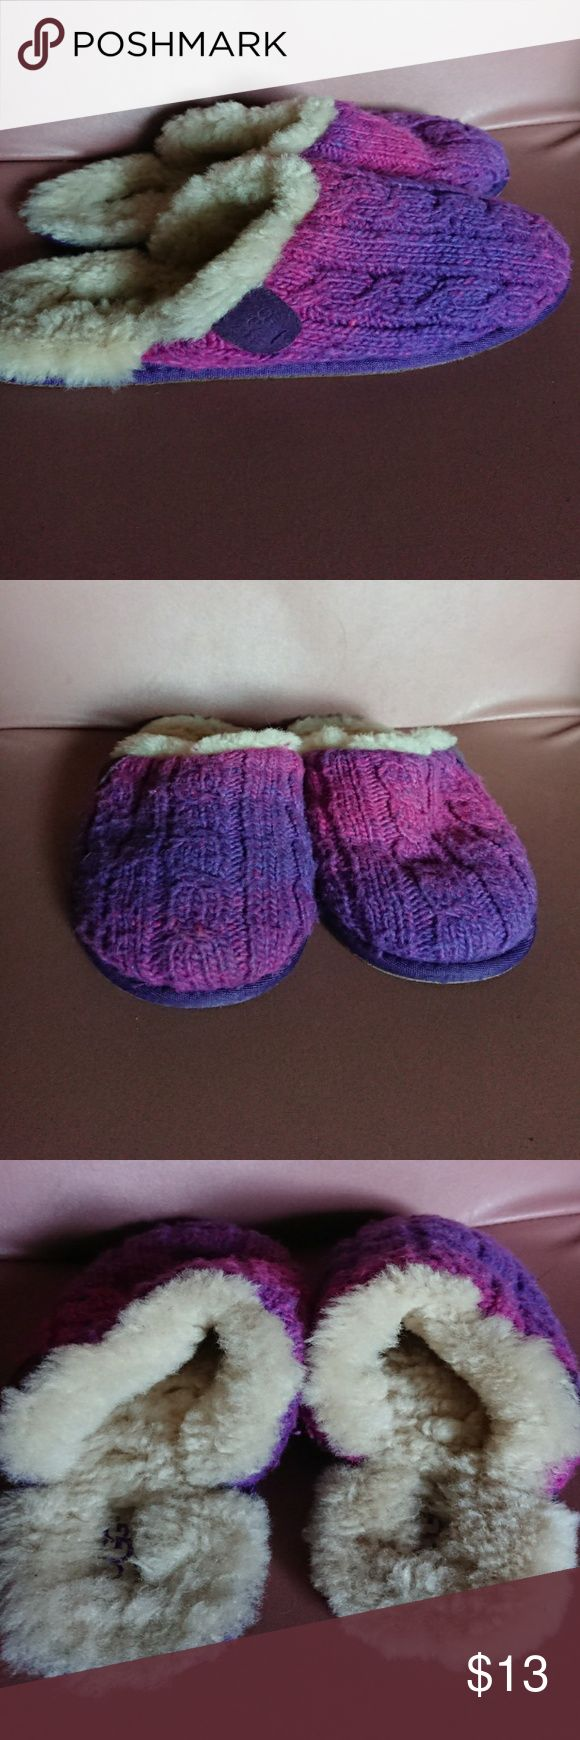 "Ugg 5 shearling slippers purple pink knit used Pre-owned no defects, tag lost sole measures 9"" 3/8 Ugg Shoes Slippers"